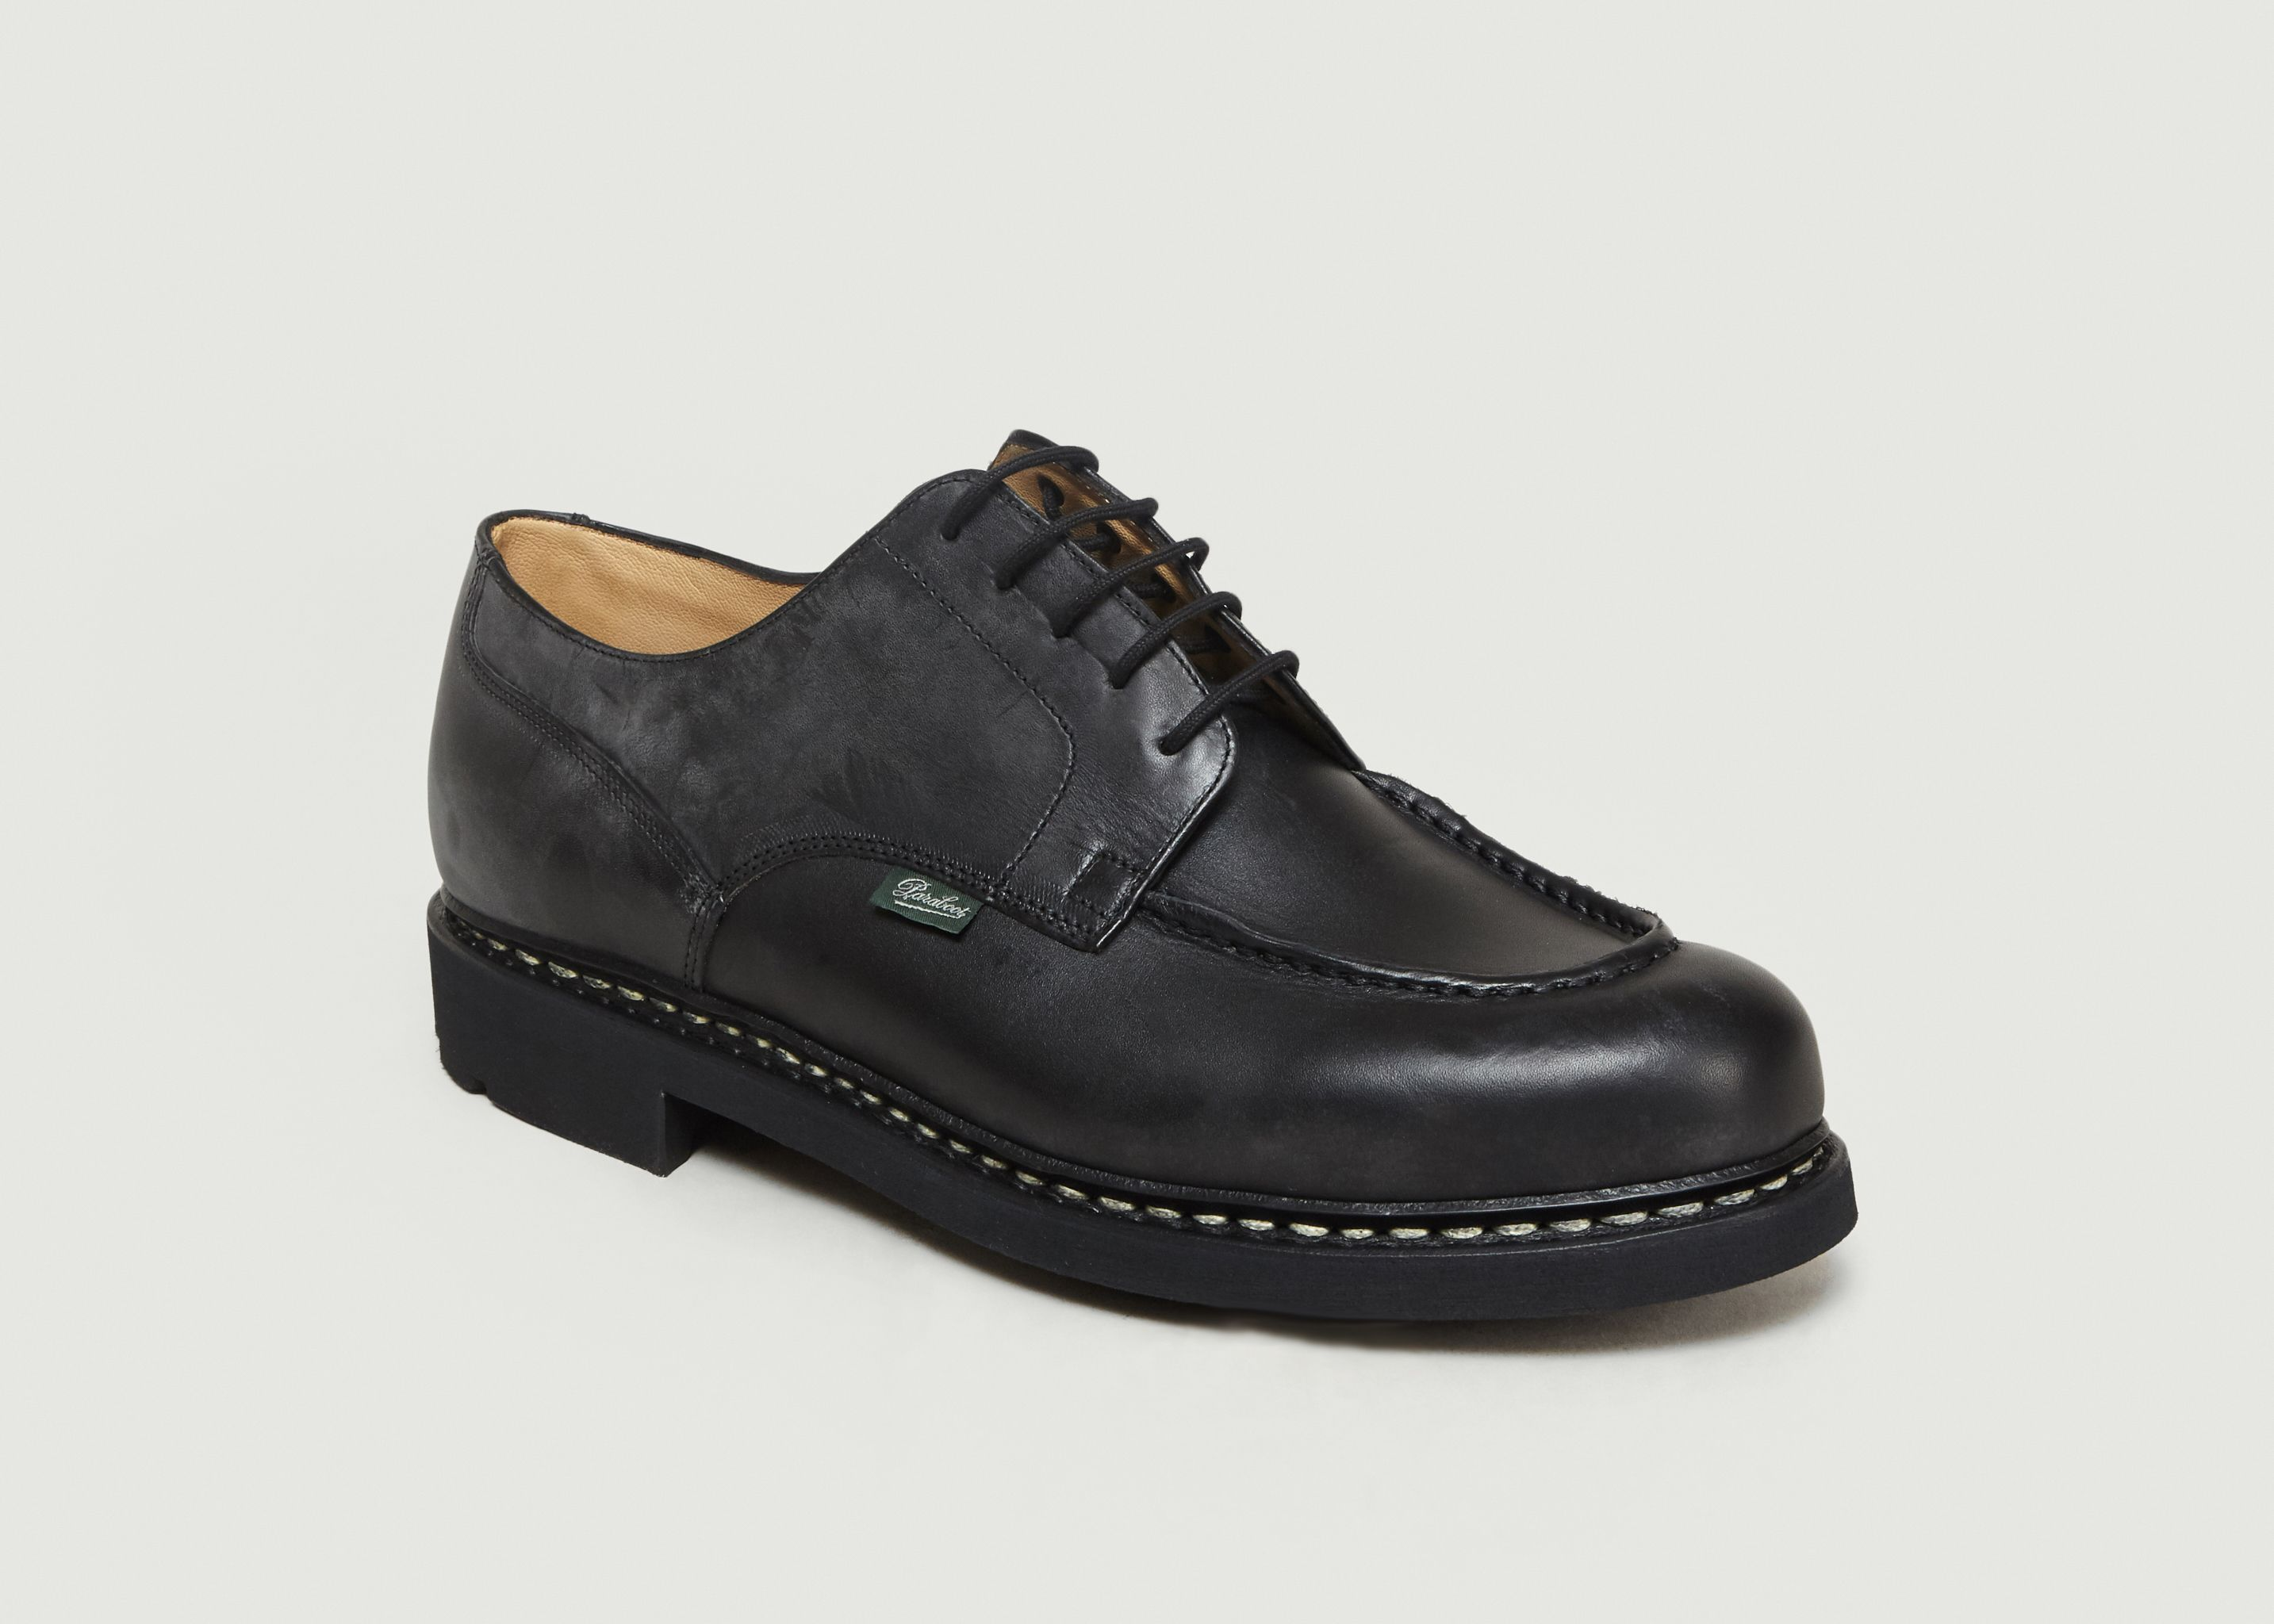 Chambord Chaussures Noir L'exception Paraboot Chaussures xoCedBrW